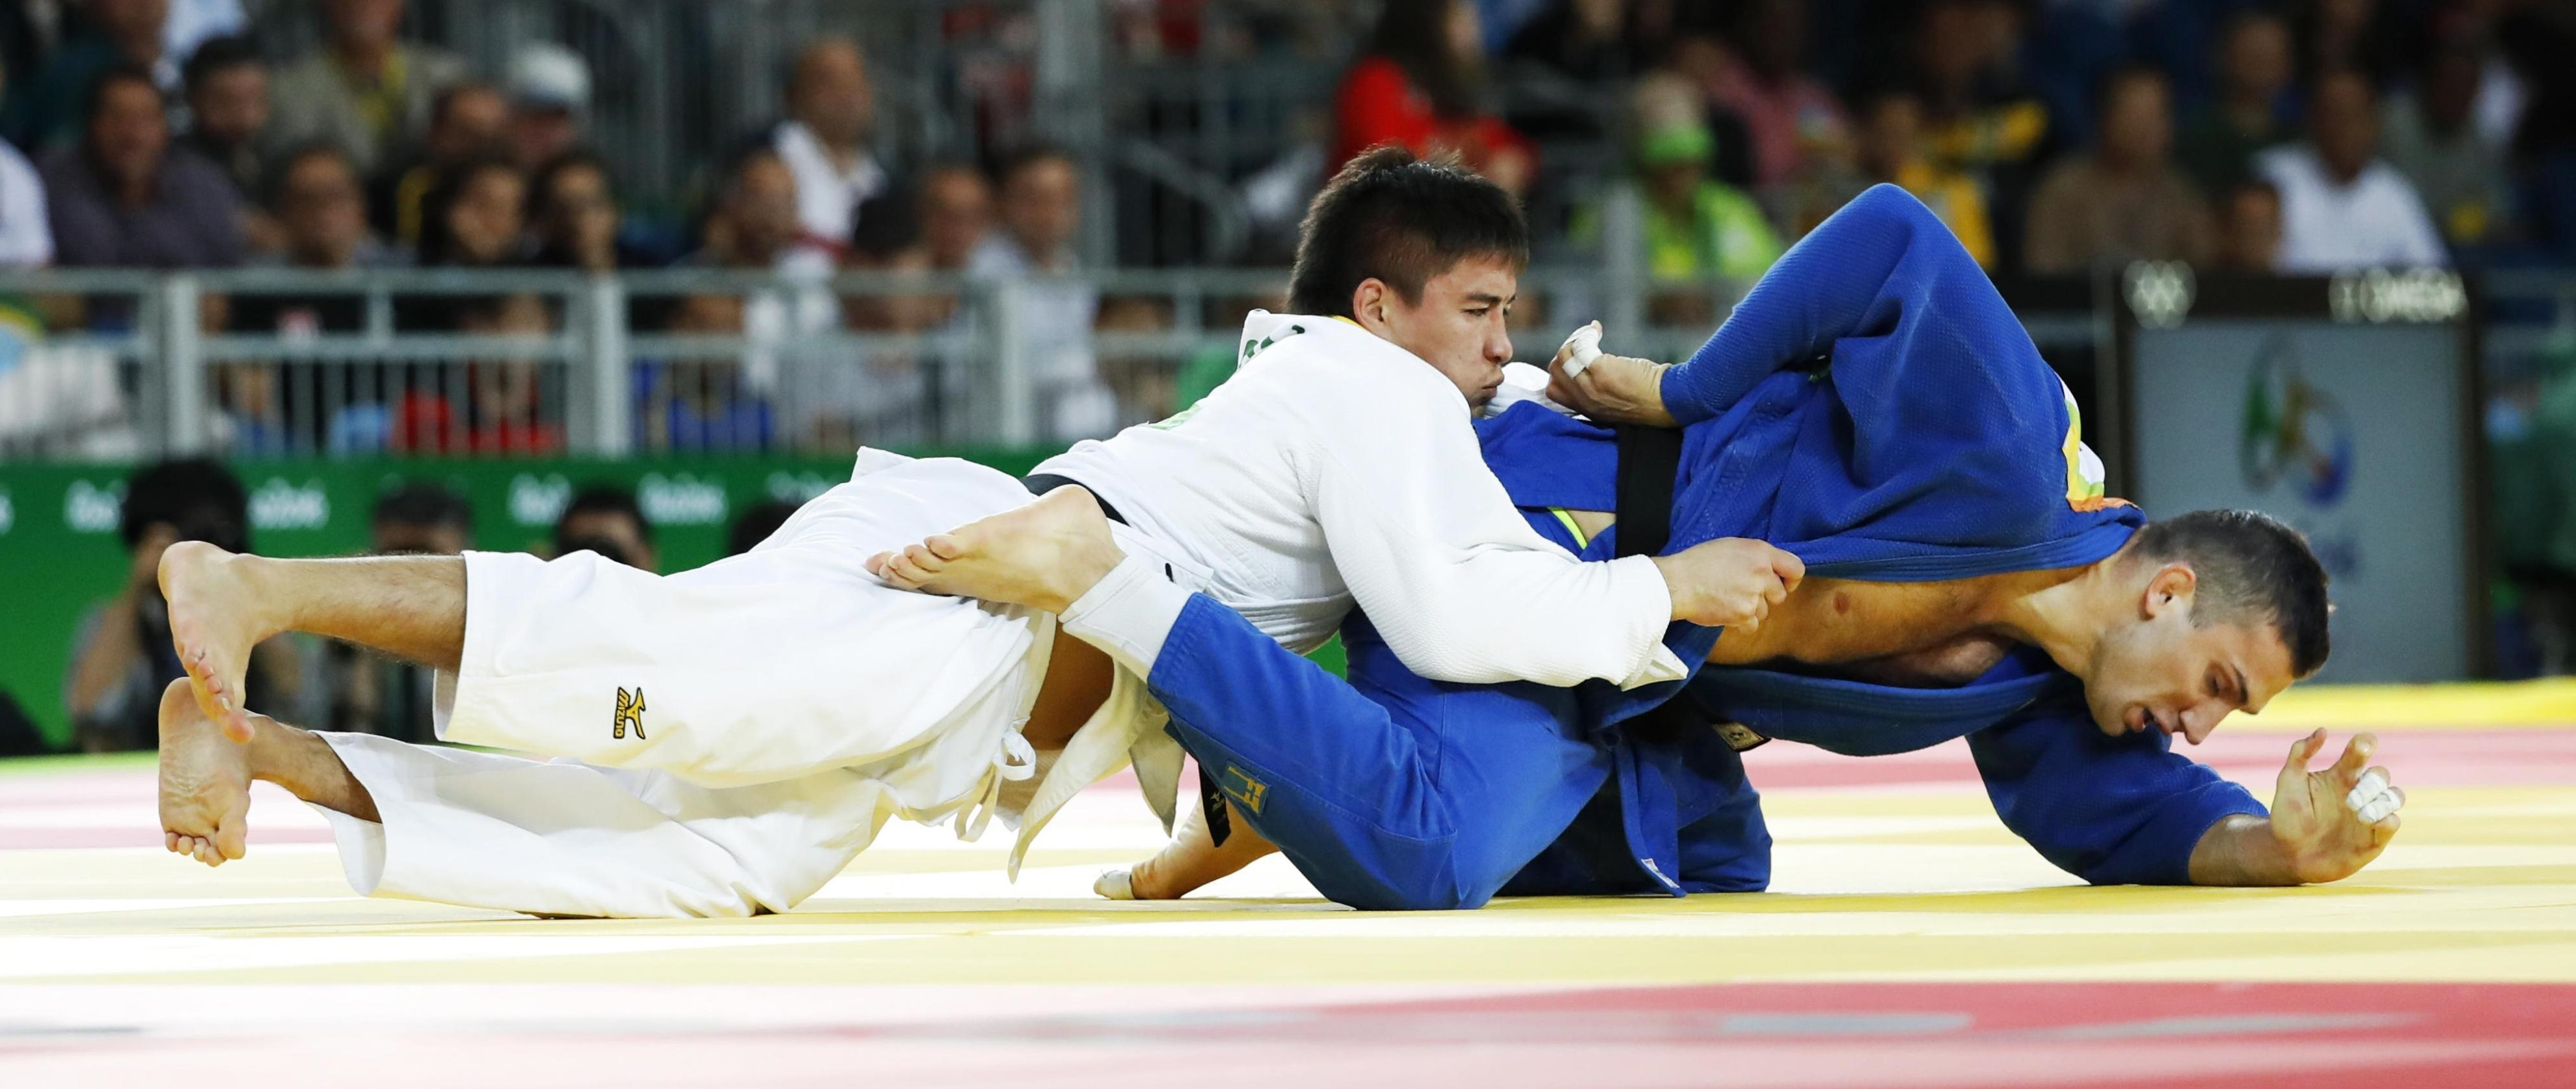 Mashu Baker fights Varlam Liparteliani of Georgia during the men's 90-kg final of judo on Wednesday at Rio Olympics. | REUTERS